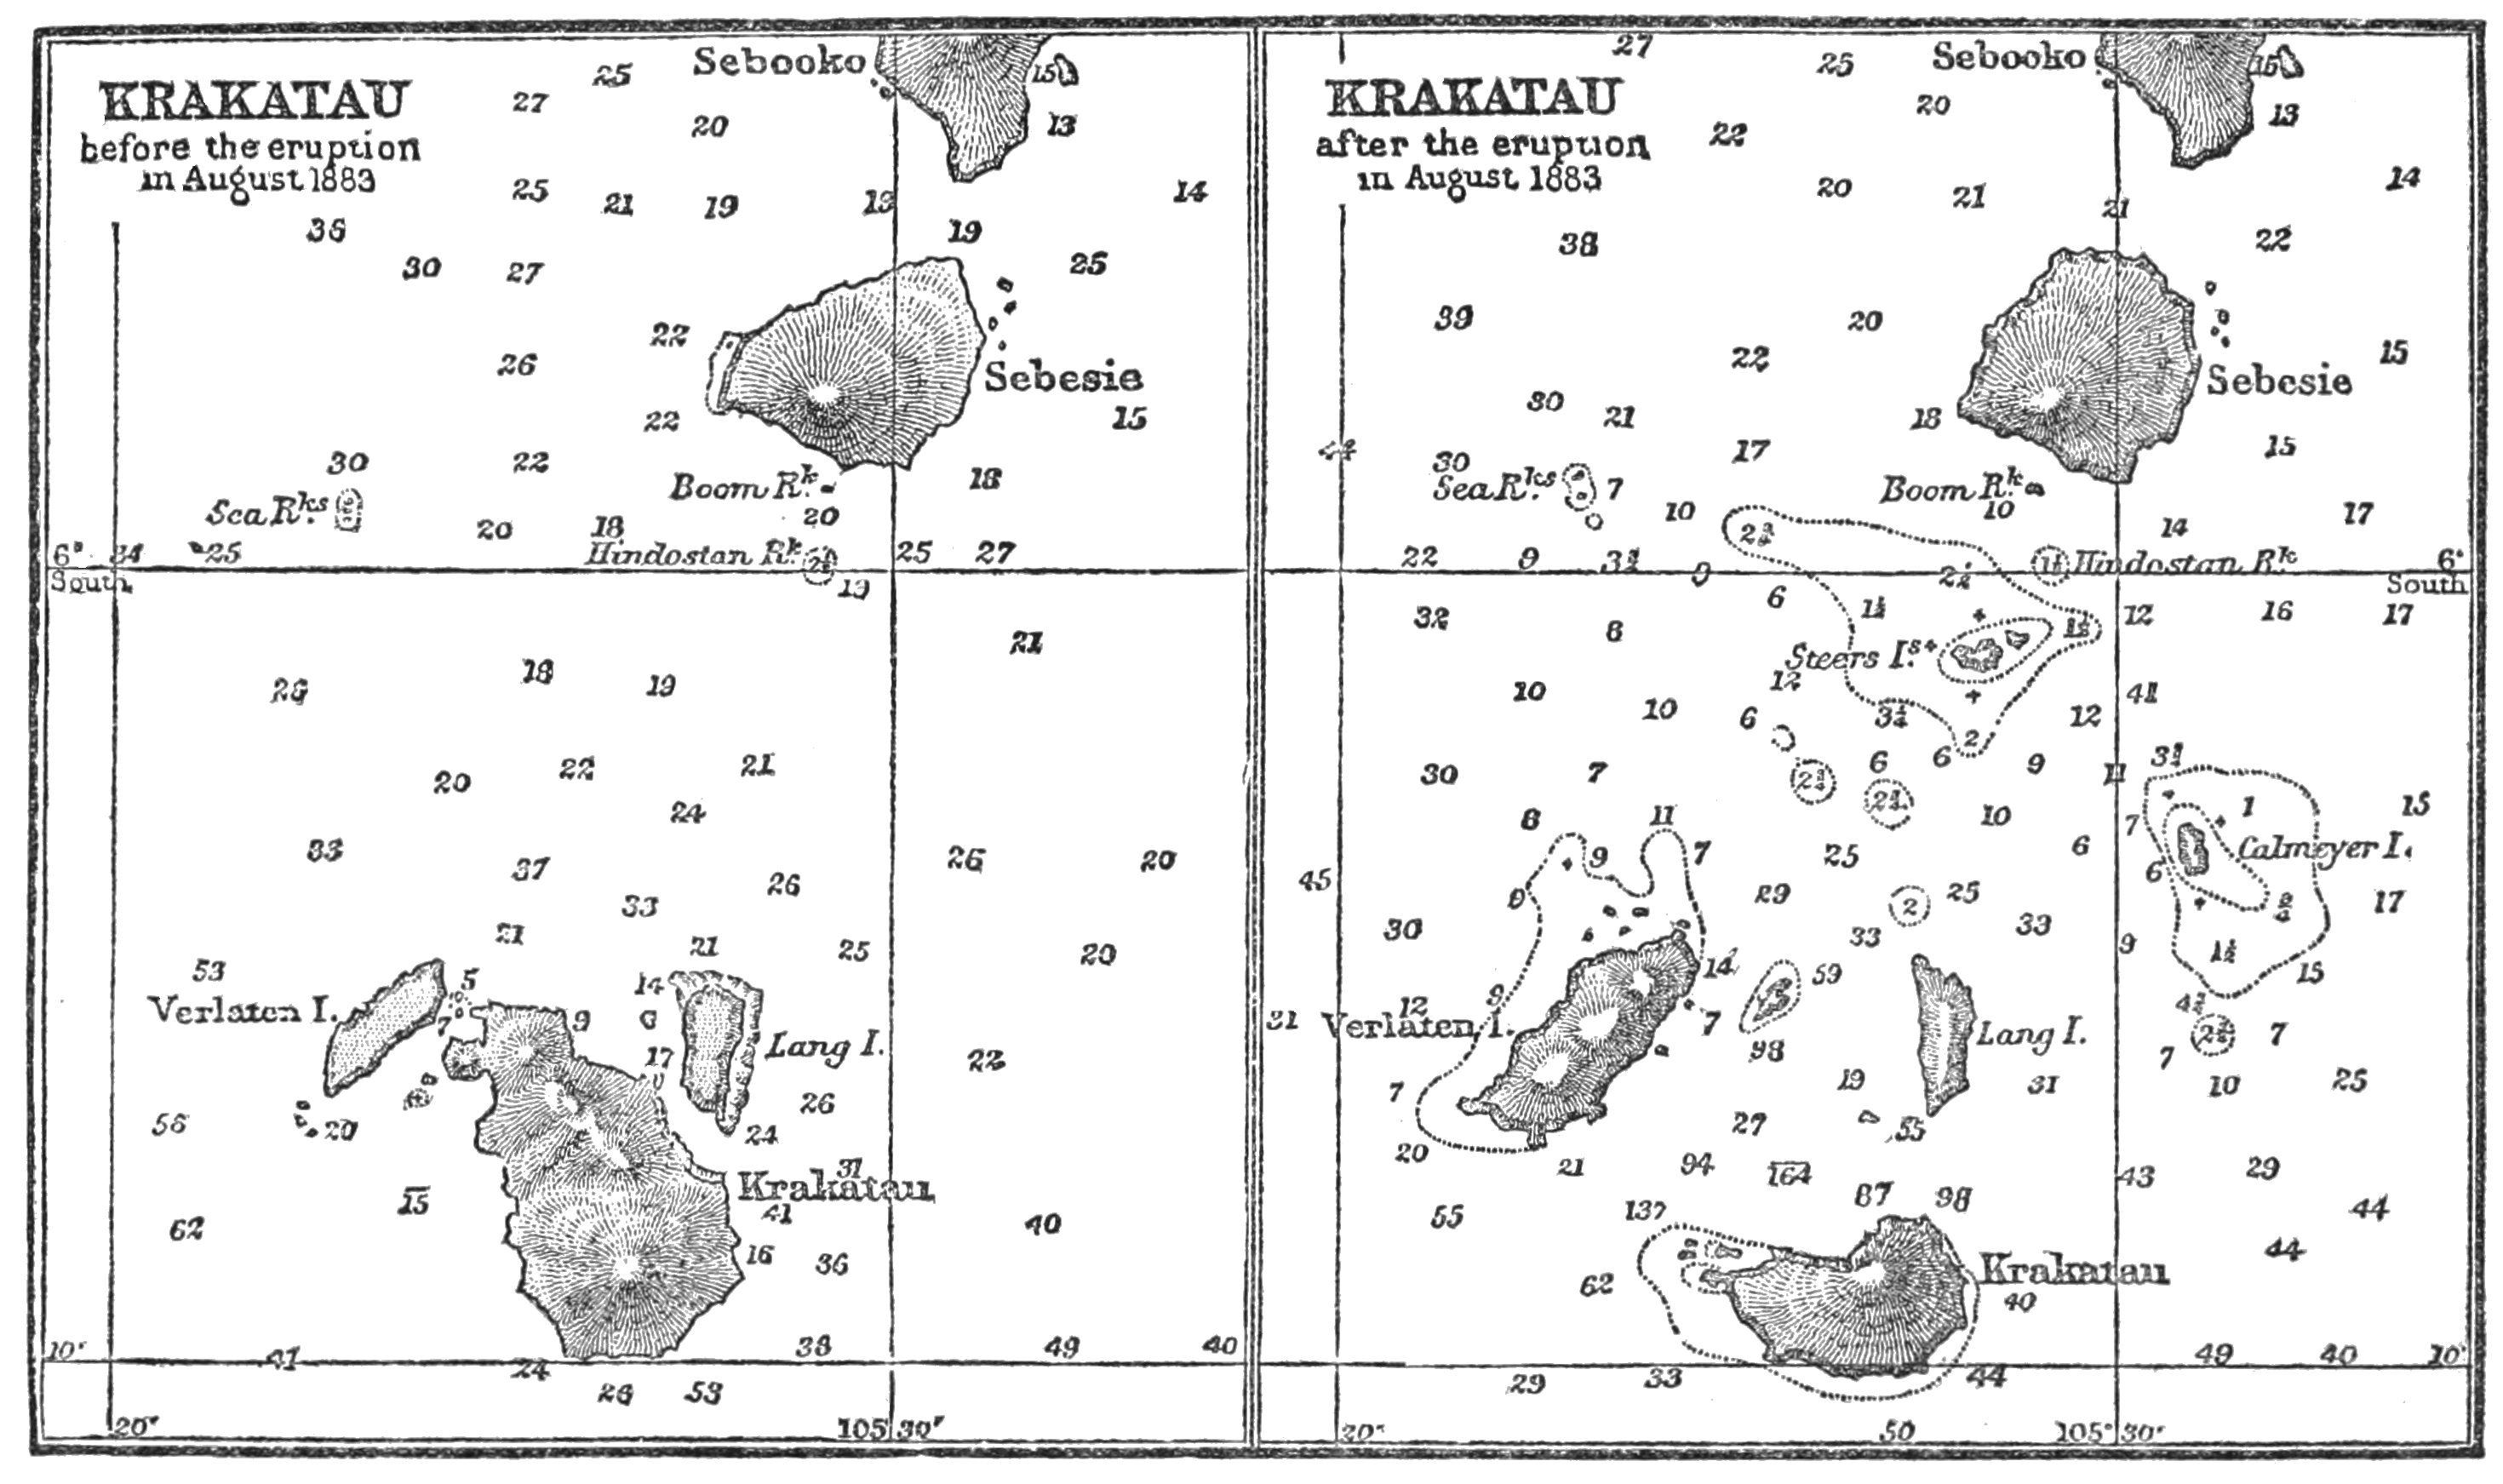 PSM V25 D379 Krakatoa before after eruption in august 1883.jpg